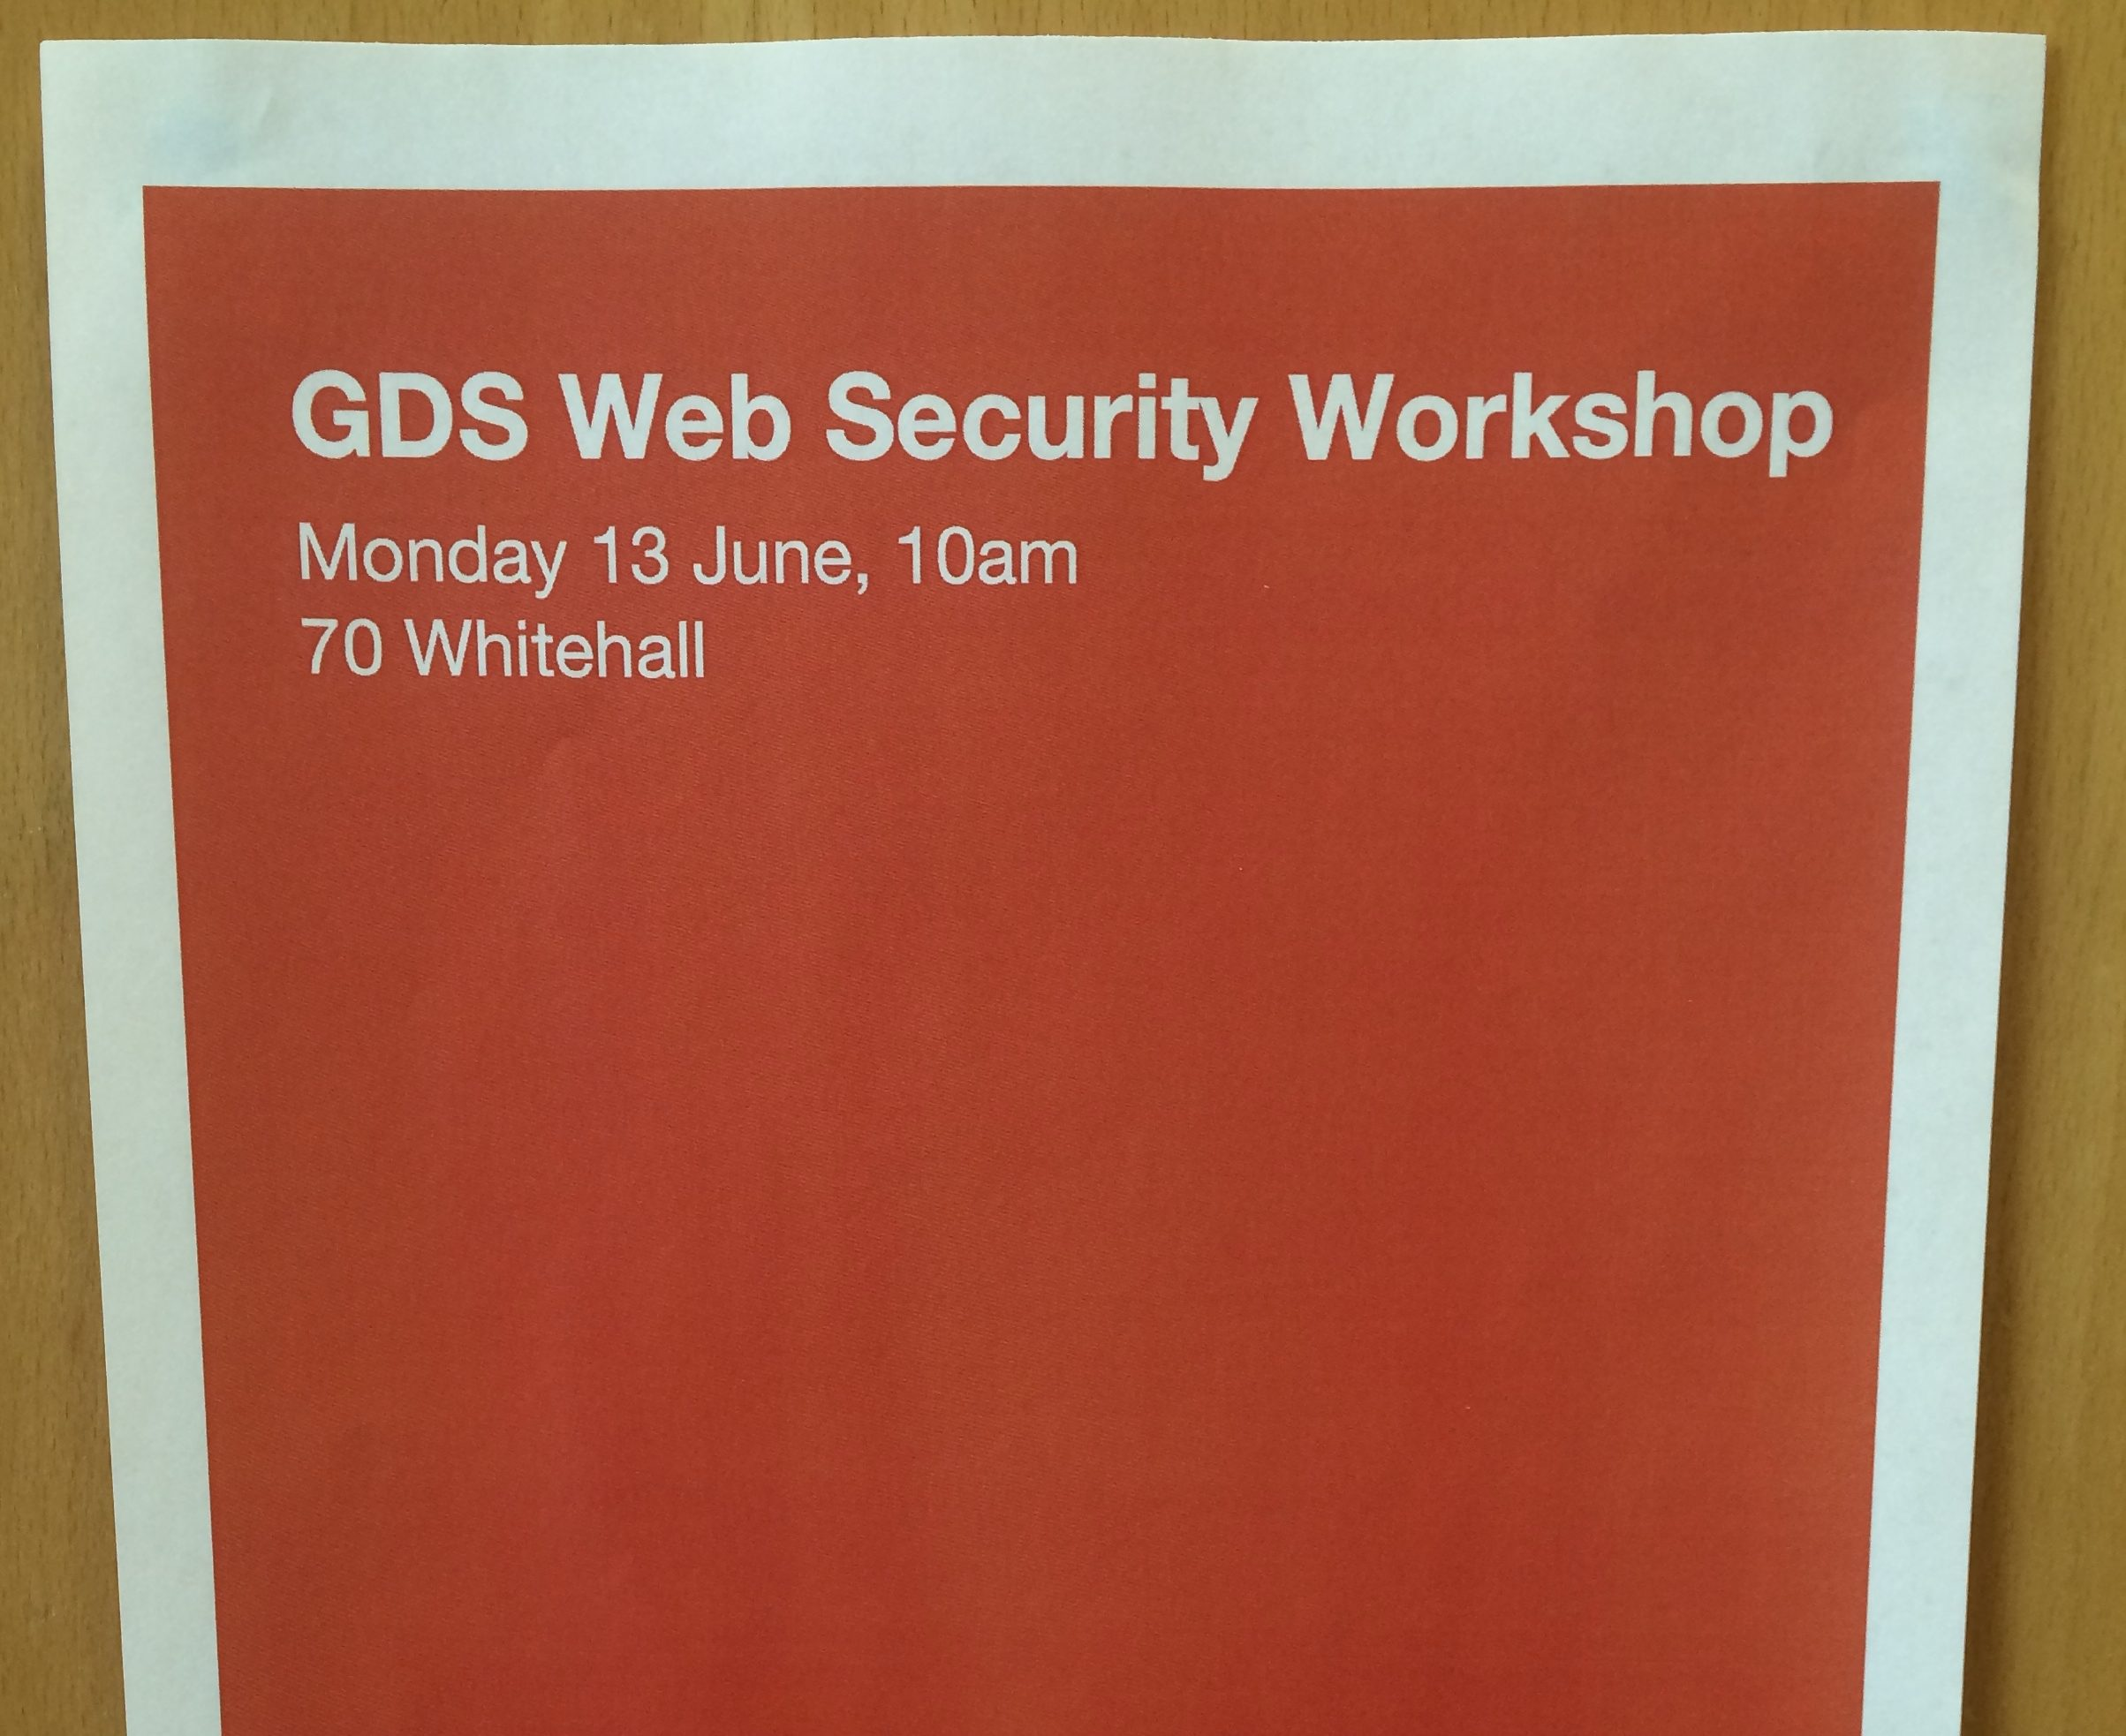 GDS Web Security Workshop poster